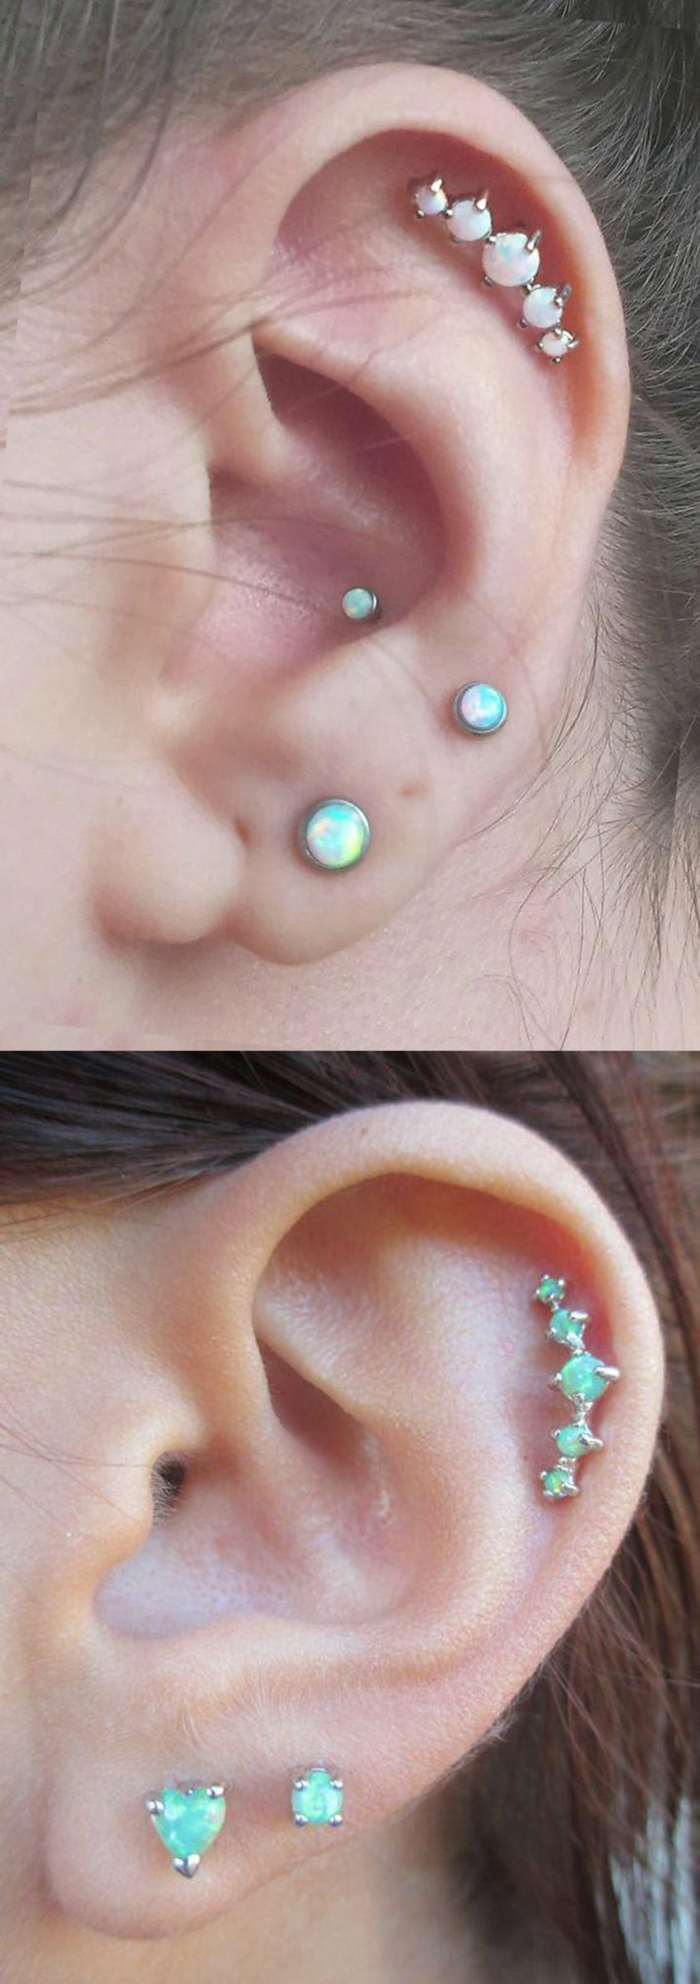 two close up photos of ears, wearing multiple different earrings with blue rhinestones, how much is a cartilage piercing